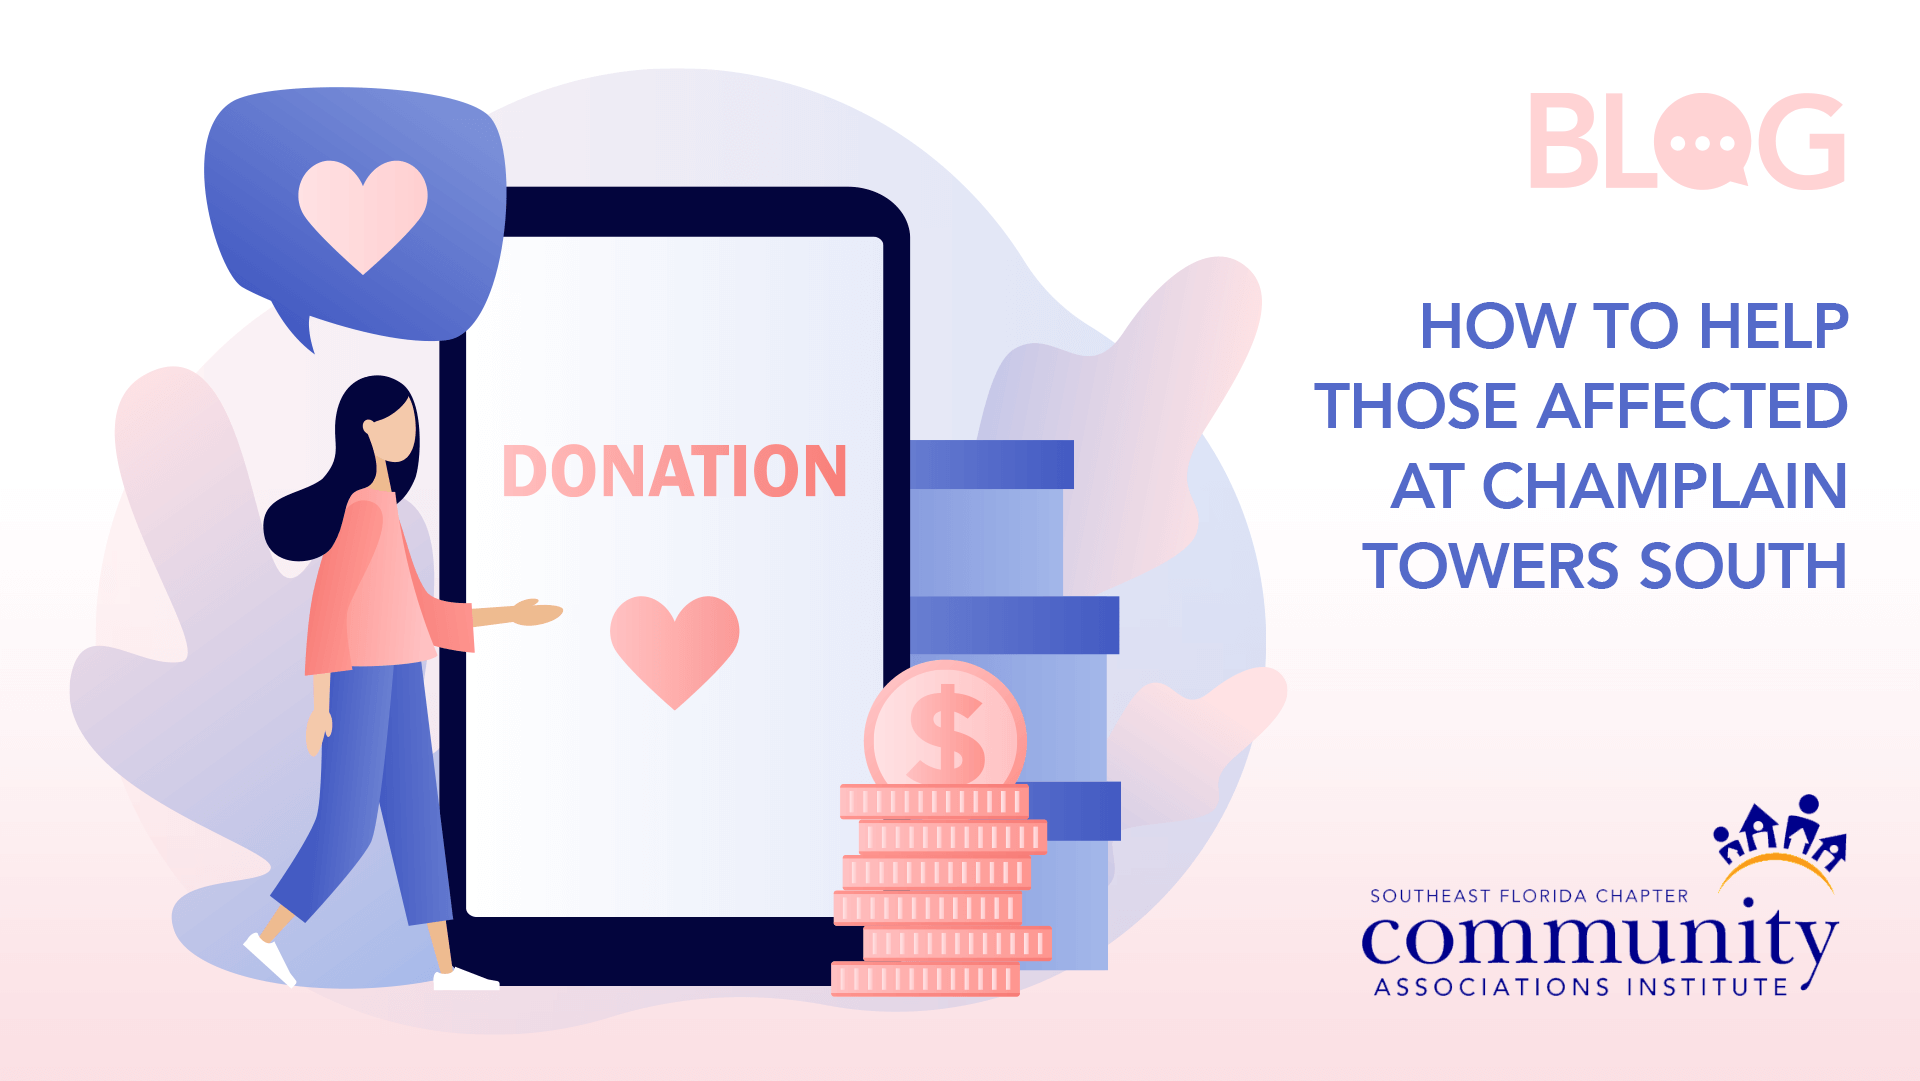 On The Blog: How To Help Those Affected At Champlain Towers South